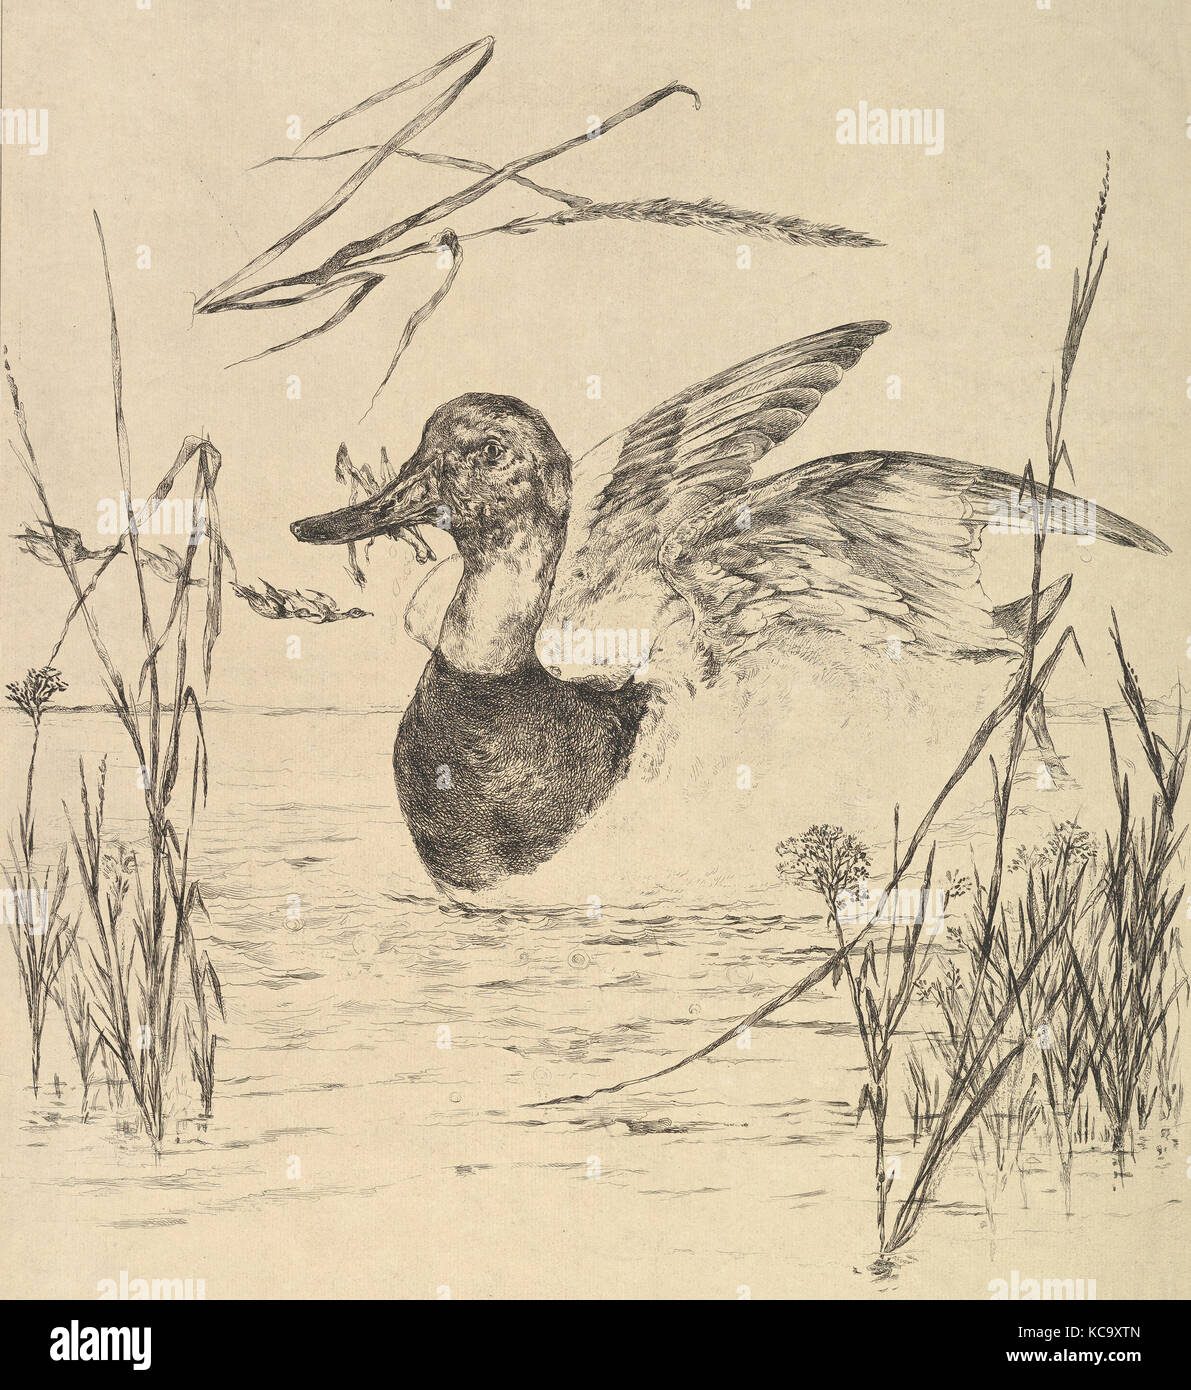 Duck, 1850–1914, Etching; proof state, sheet: 19 1/2 x 16 in. (49.5 x 40.6 cm), Prints, Félix Bracquemond (French, - Stock Image